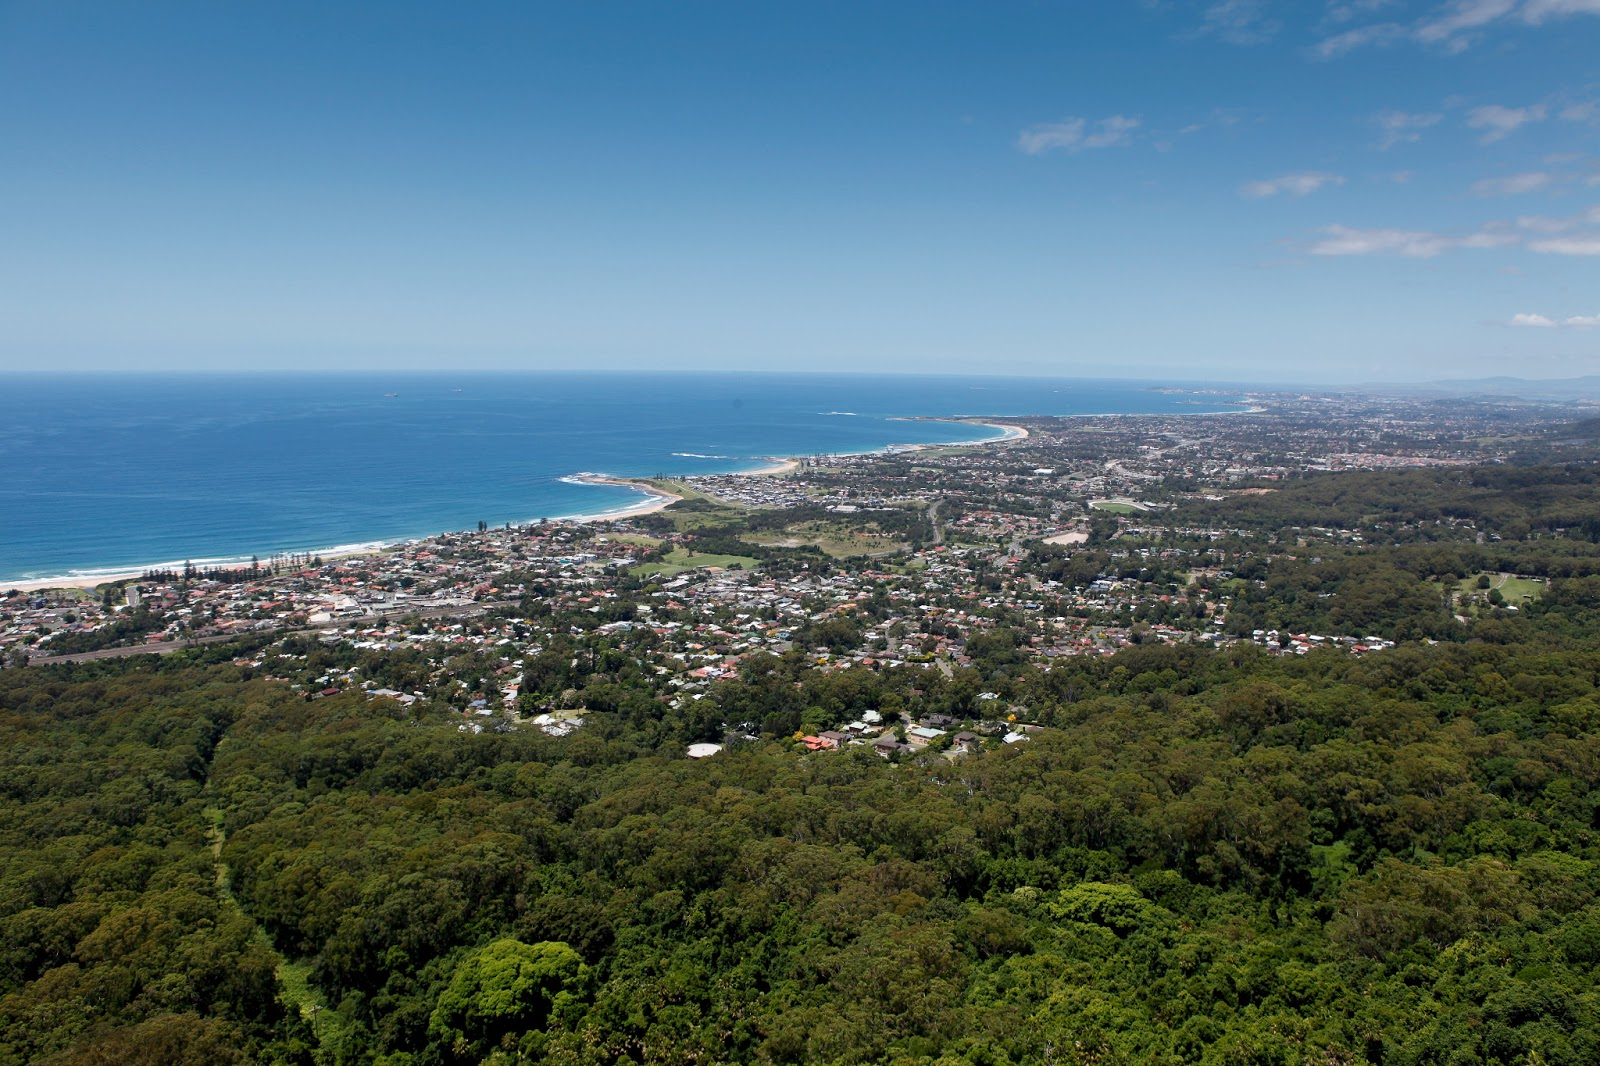 wollongong new south wales australia - photo#24